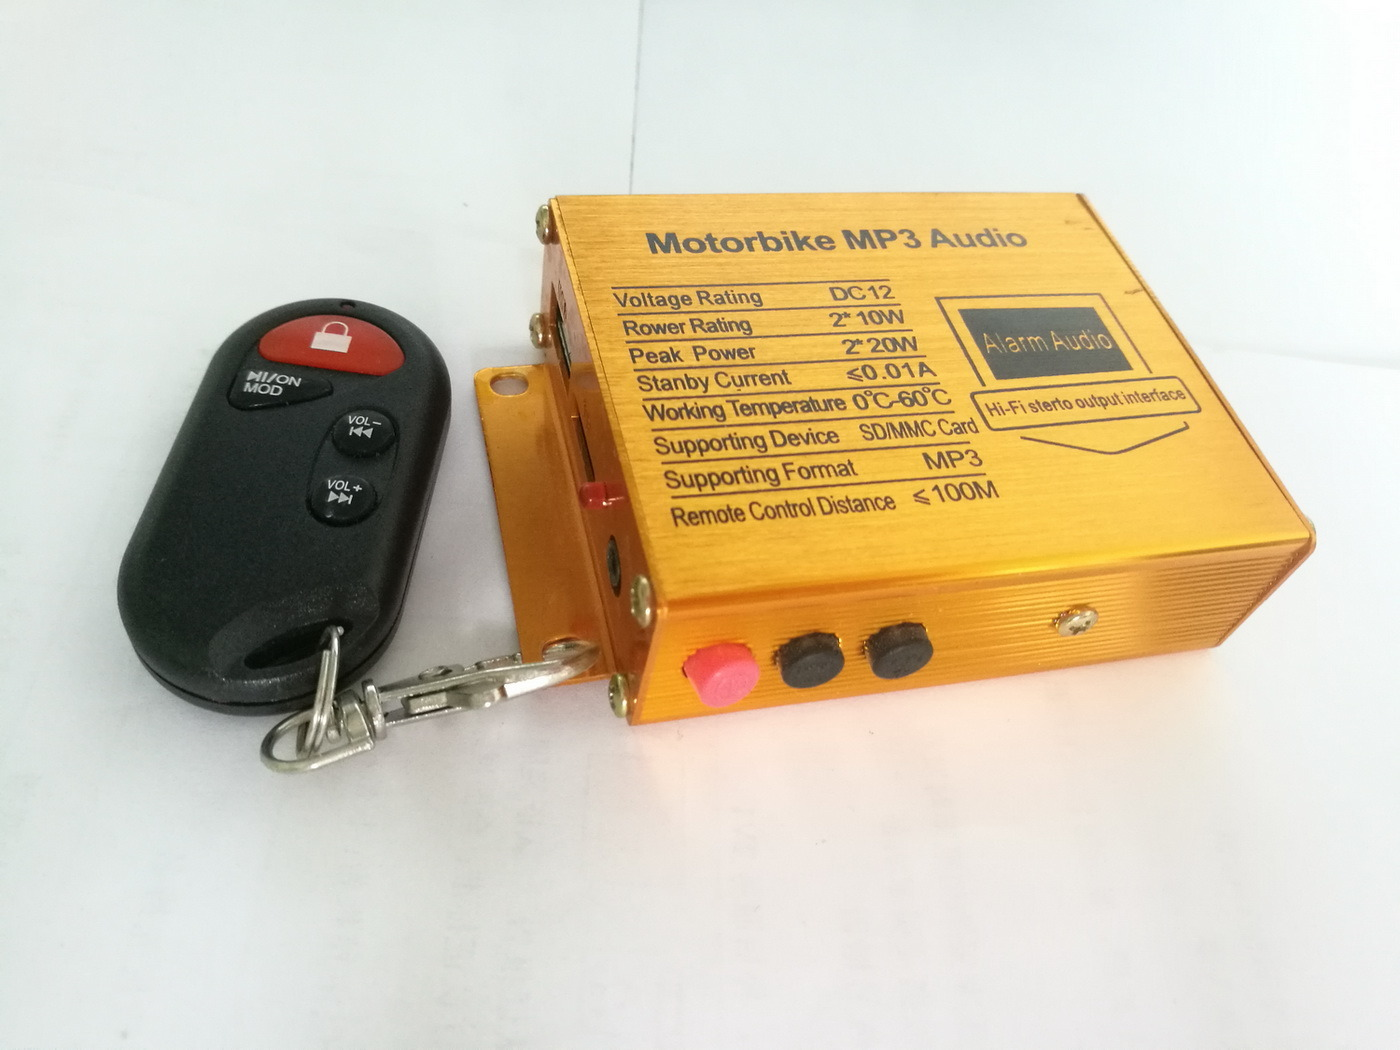 Motorcycle MP3 Audio with Push Button